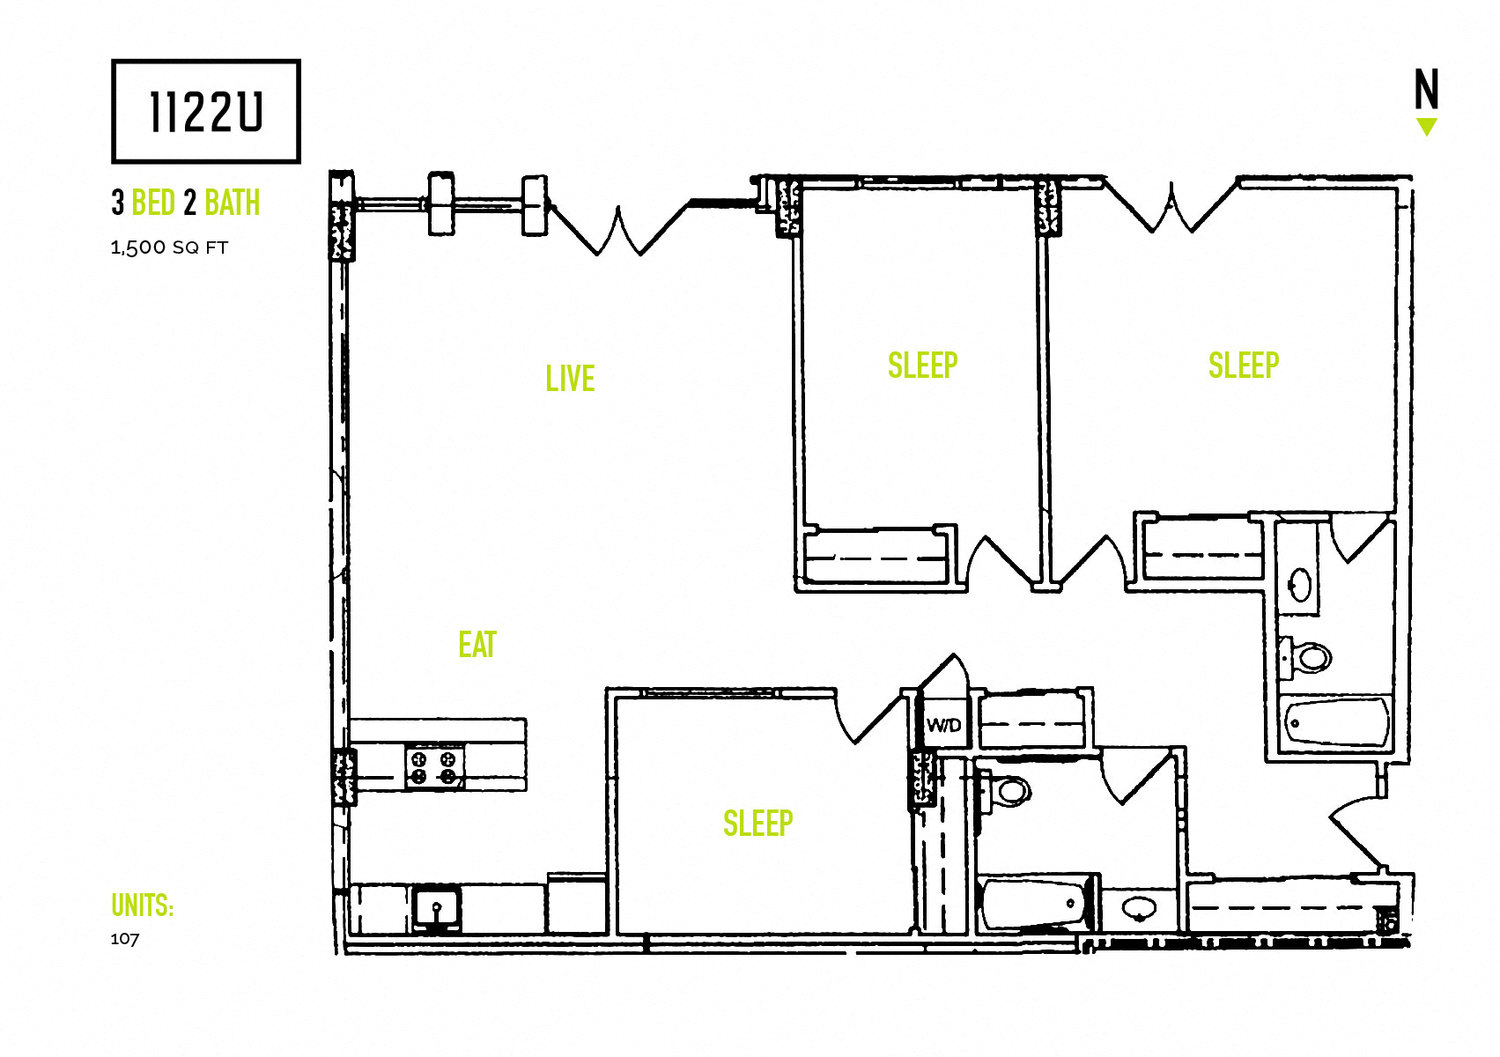 1122 U apartments, 3 bedroom floorplan  in Berkeley